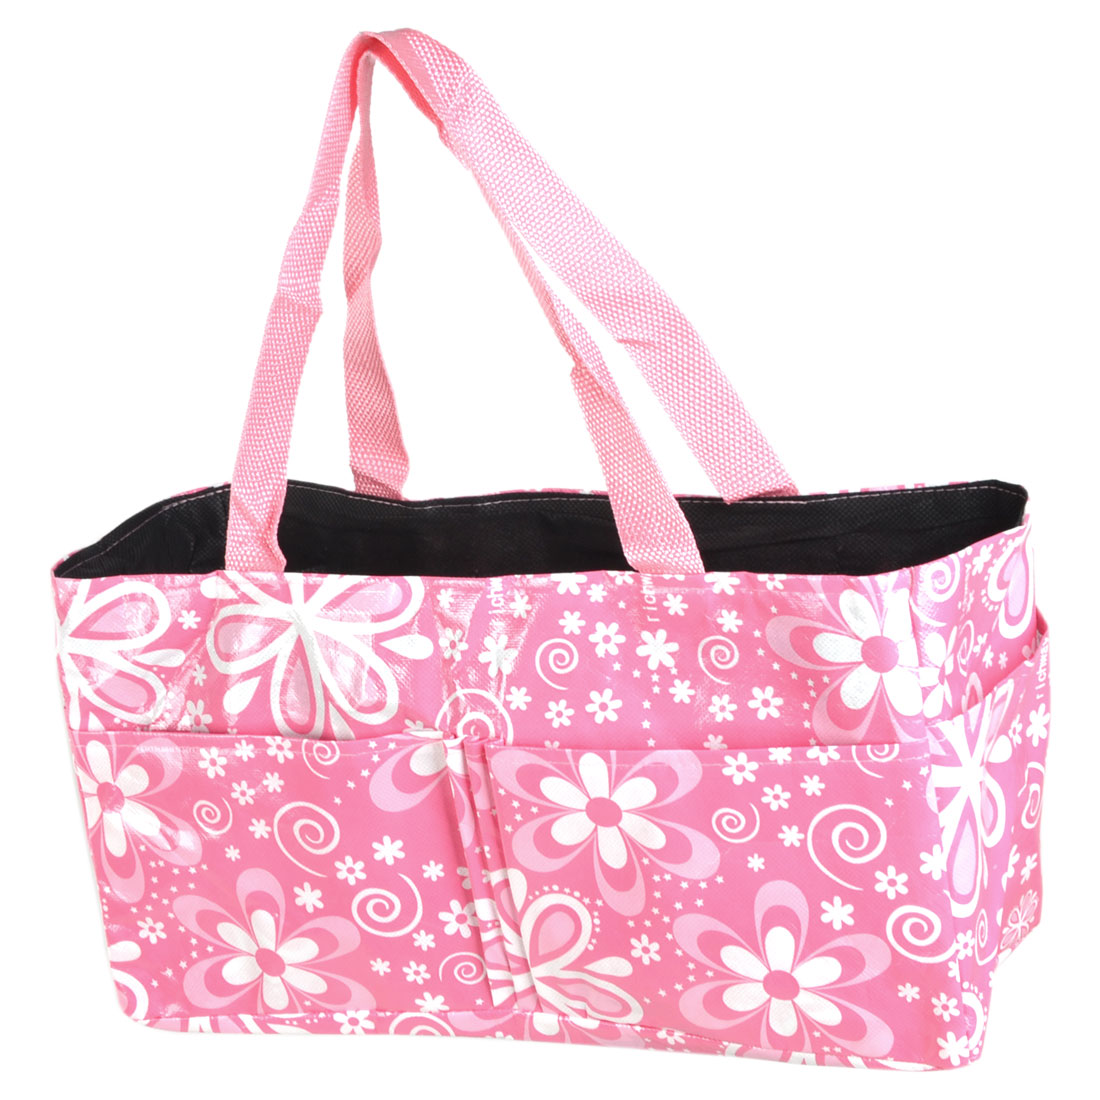 Home Mommy Pink Flower Pattern 7 Pockets Folding Storage Nappy Diaper Bag Tote Organizer